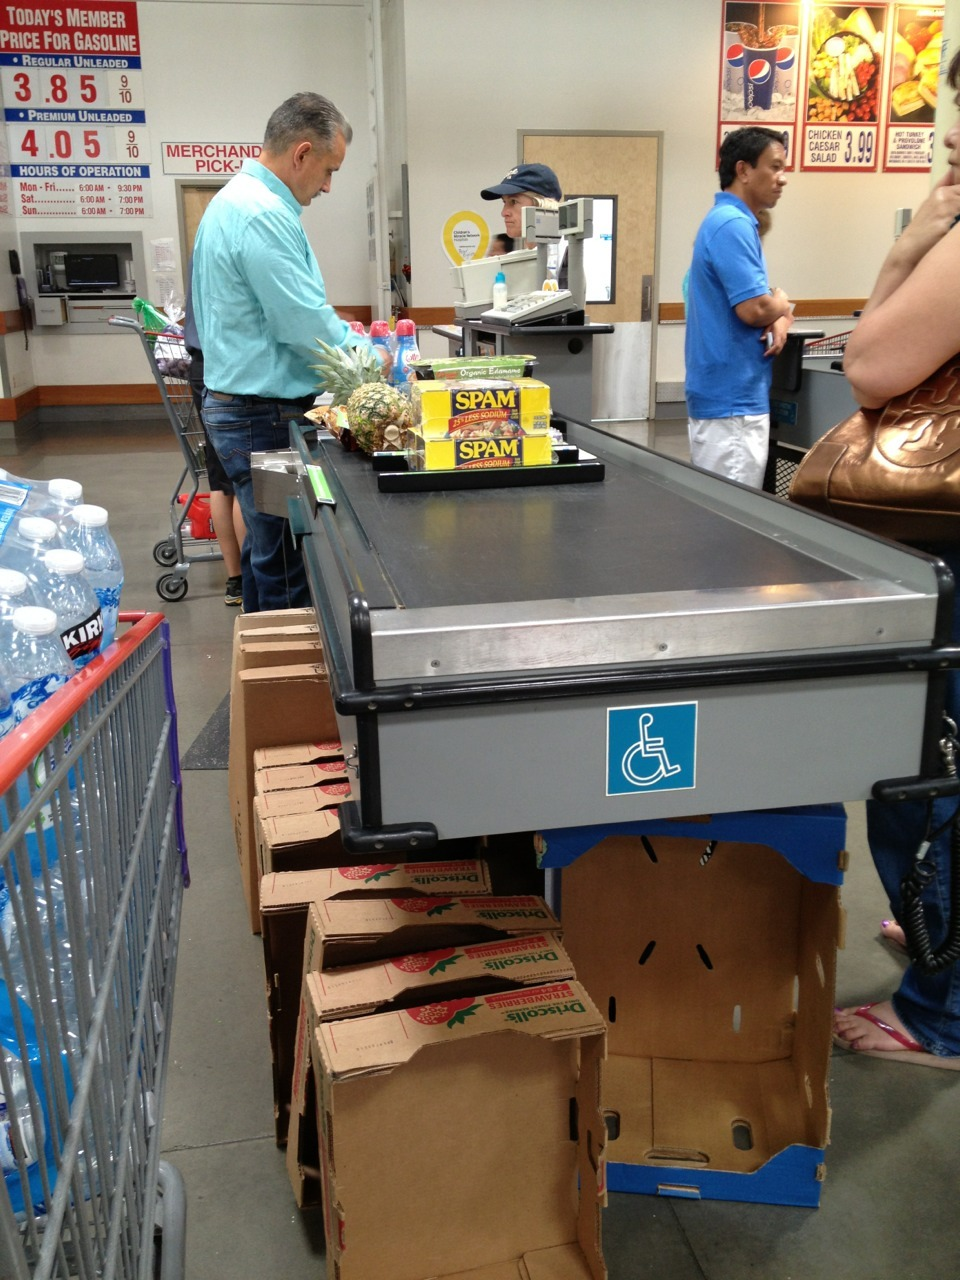 The woman who cut in front of me at Costco had this in her cart and that was it.